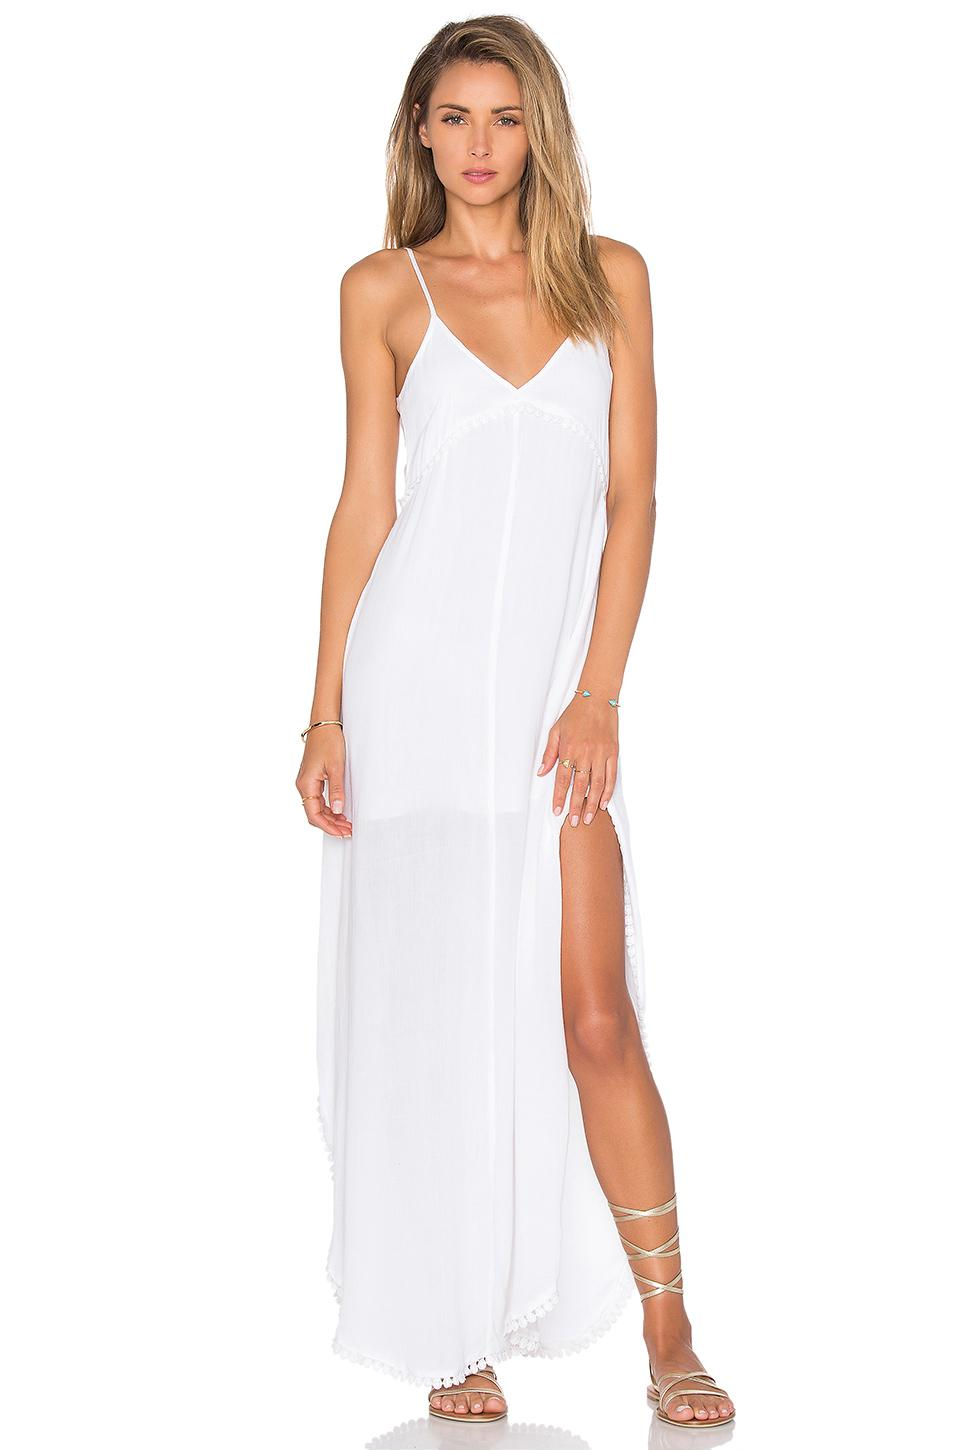 274ab8f63015 Lovers + Friends Curacao Slip Dress in White - Lyst